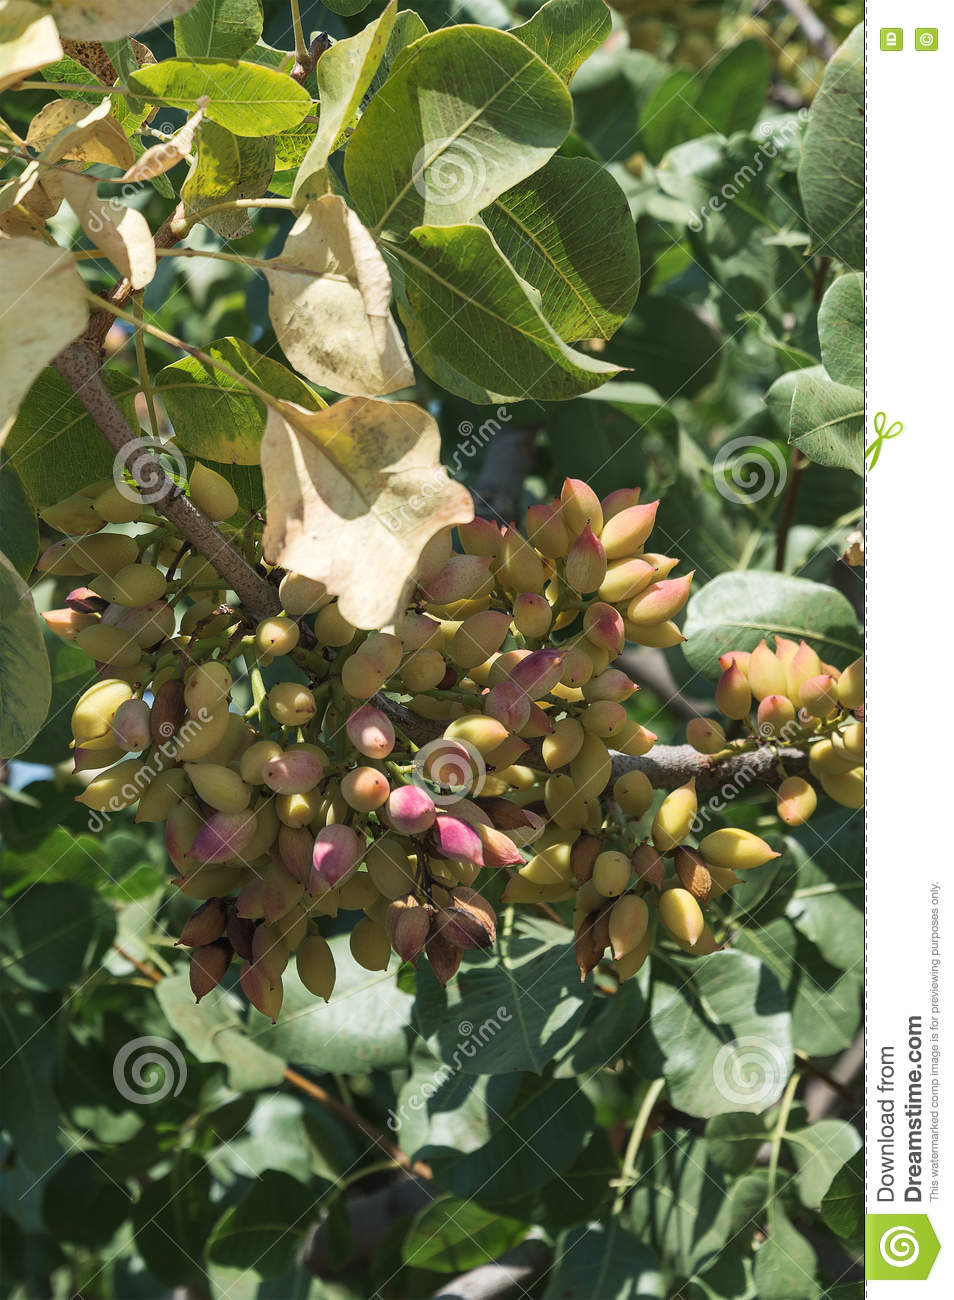 Pistachios On A Tree Branch Stock Image - Image of ...